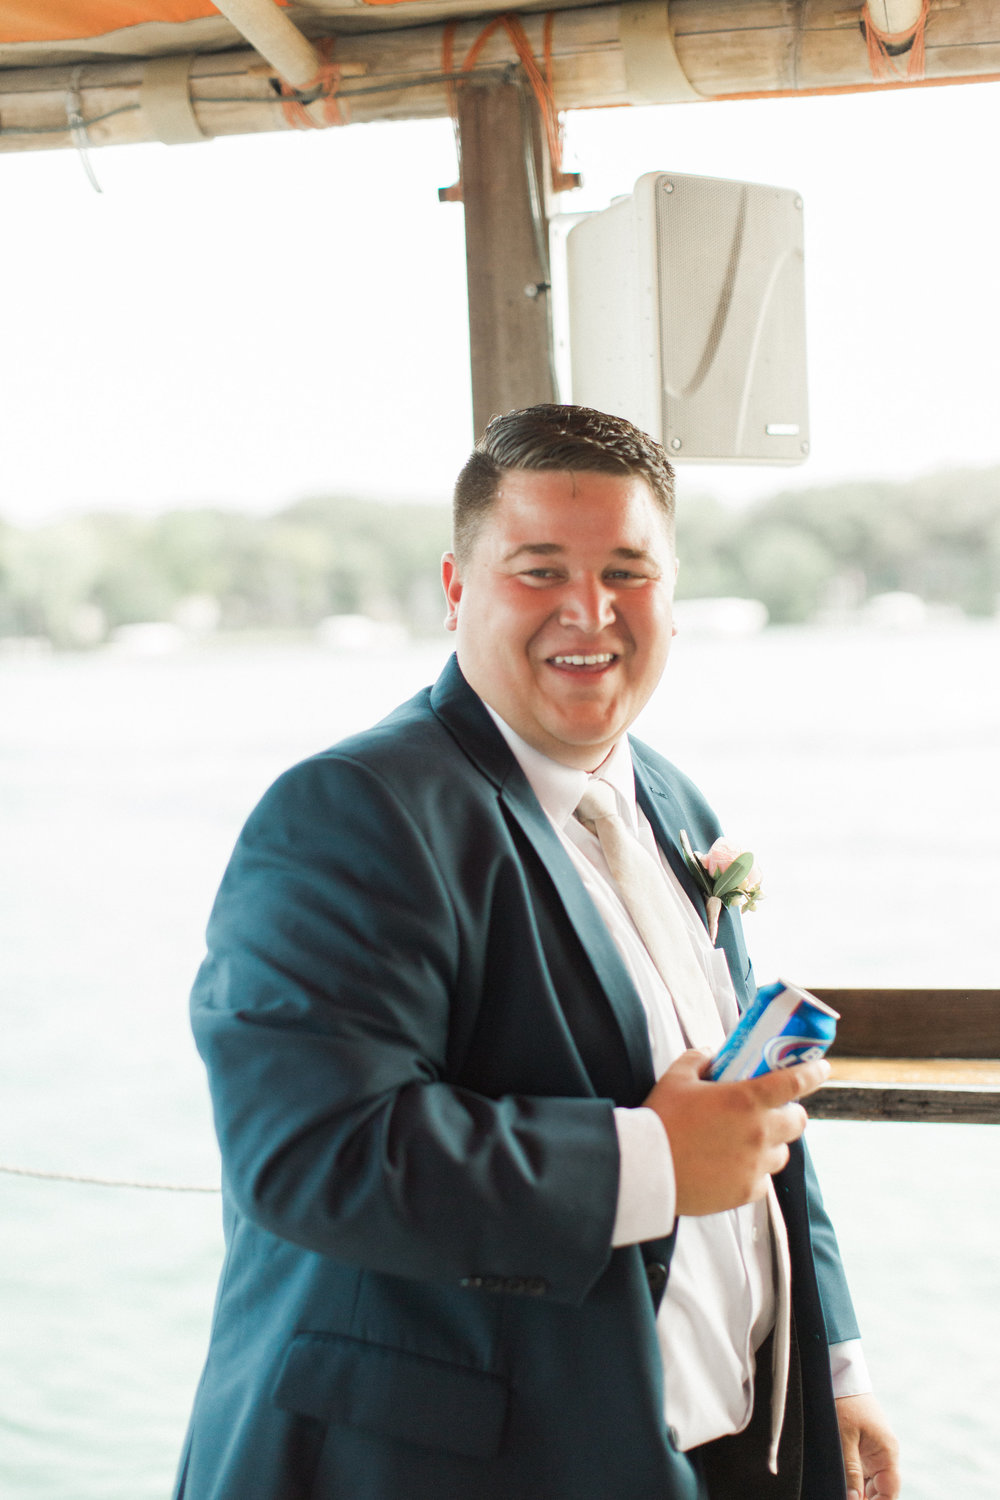 groom-blue-suit-boat-party-bus-okoboji-iowa